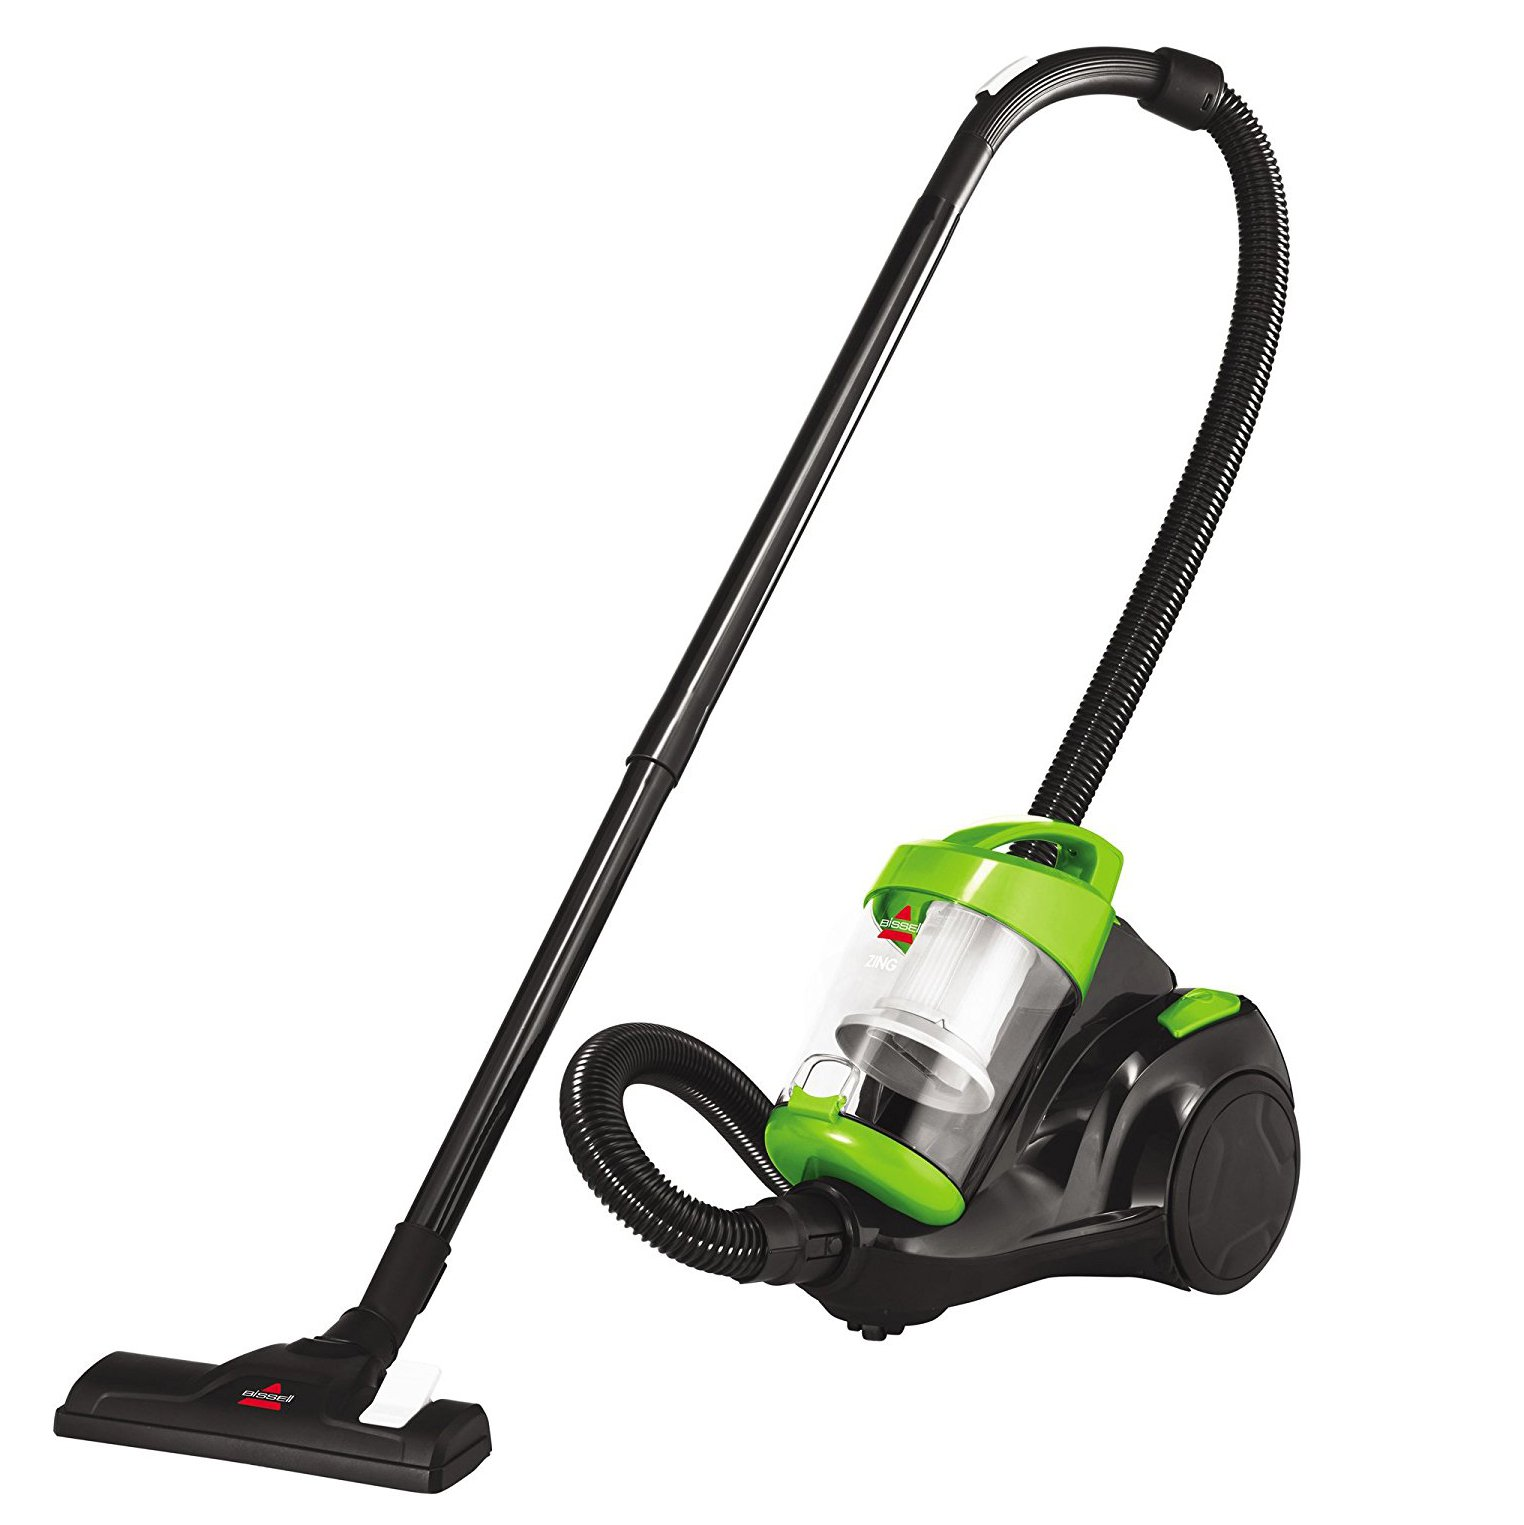 This image has been uploaded by under refurbished riding lawn mowers lowes, riding lawn mowers lowest price, reconditioned lawn mowers lowes tag. You can view even more useful posts in home interior design group.